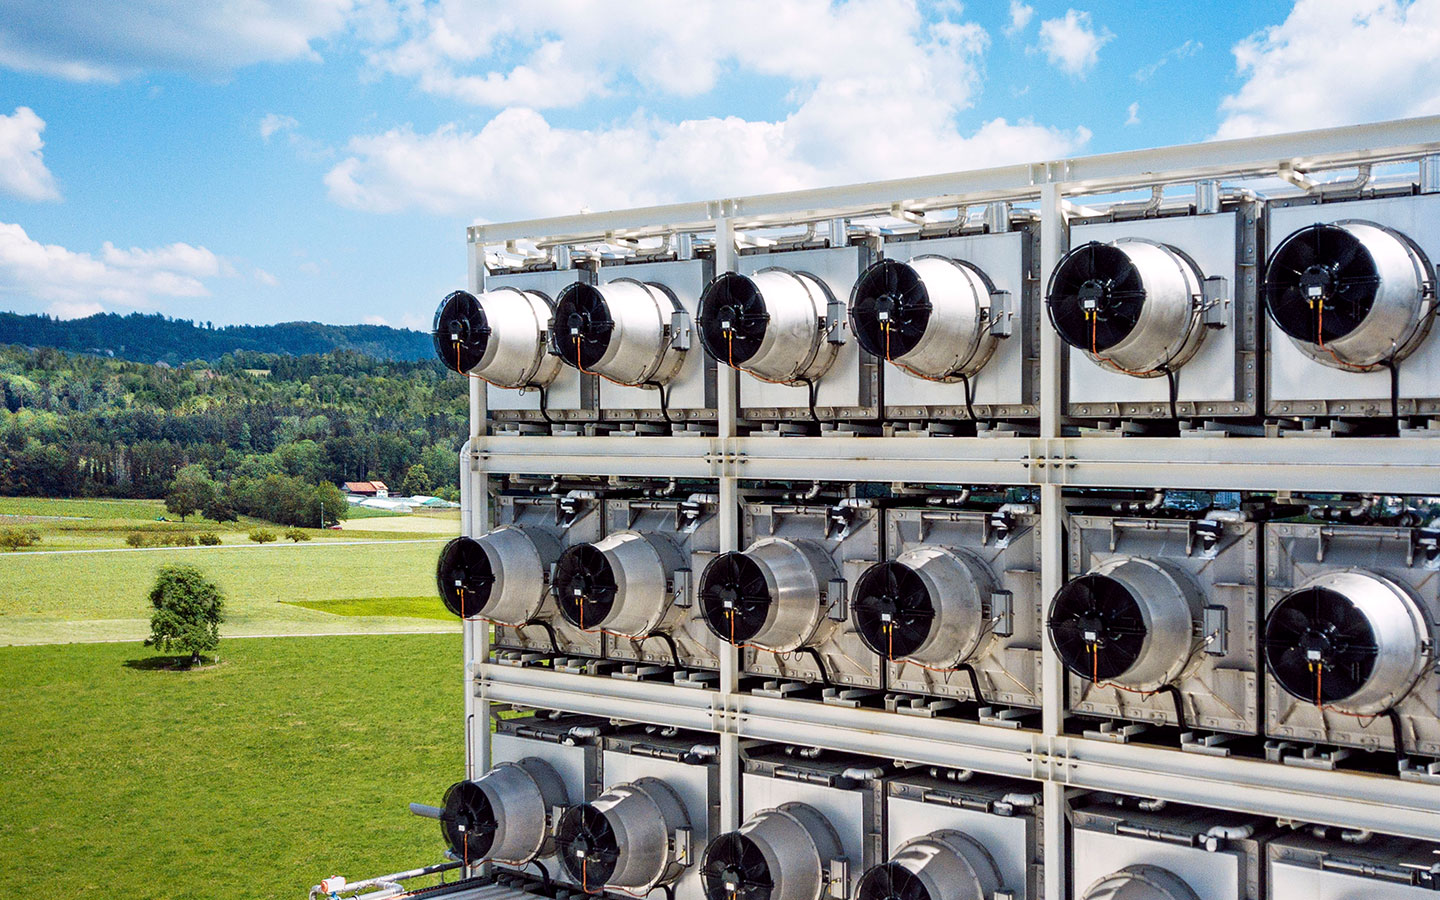 <p>Climeworks' first commercial direct air capture (DAC) plant, based in Hinwil, Switzerland. The fans draw in air, where the CO2 in that air reacts with chemicals that selectively bind it. Photo by Climeworks</p>